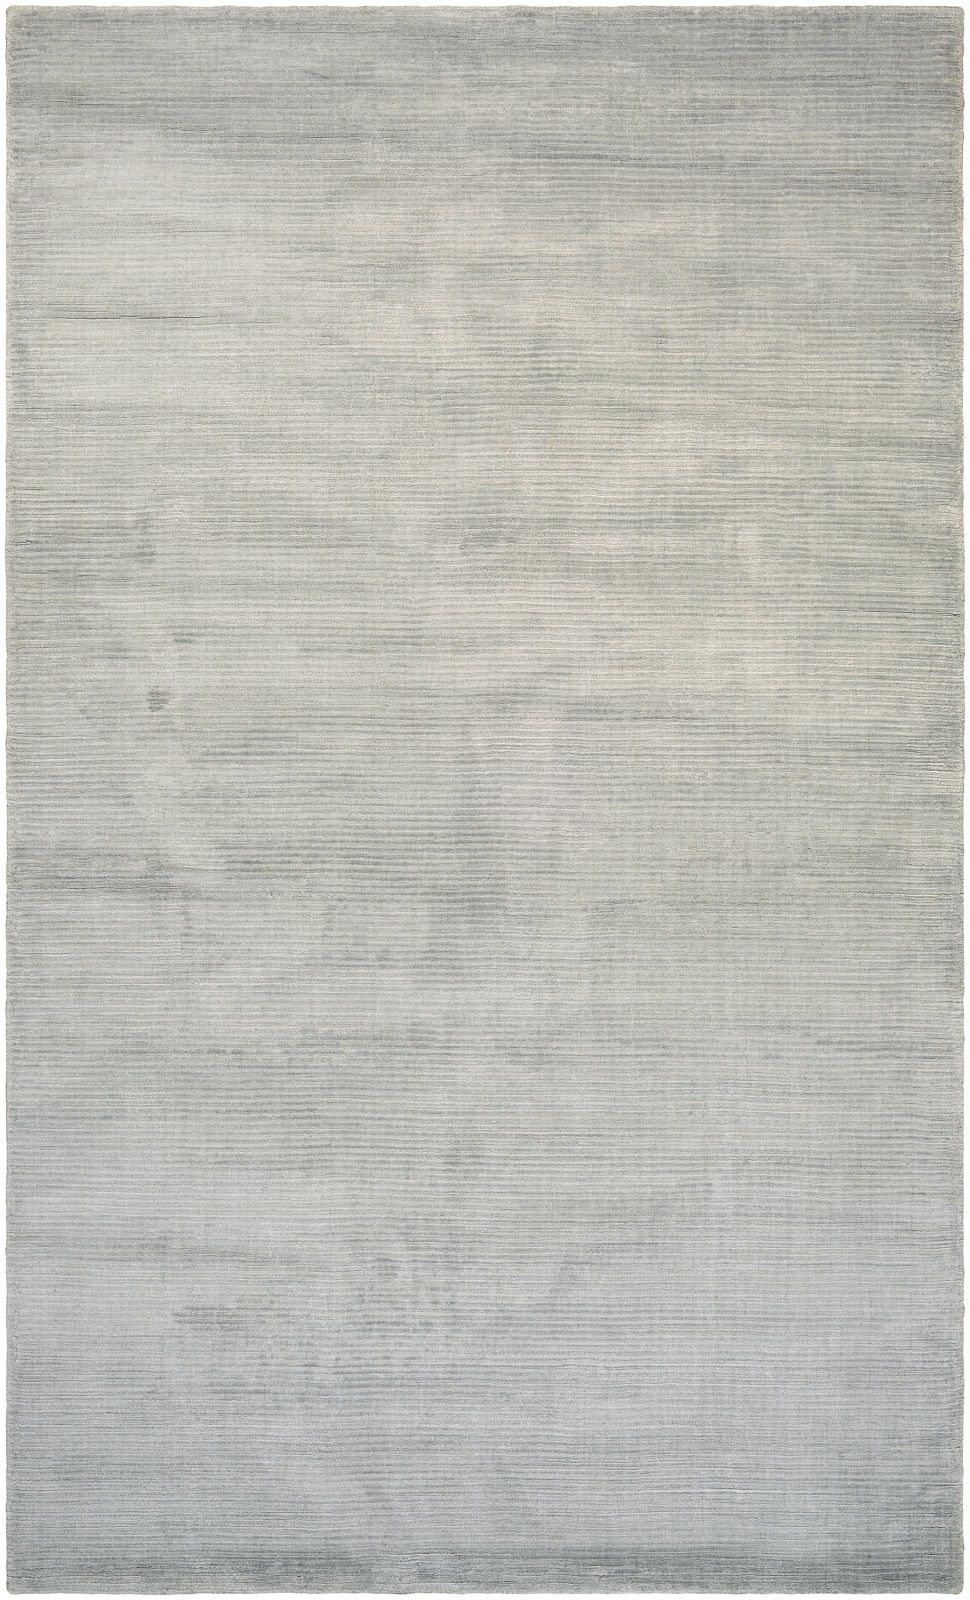 couristan royals solid/striped area rug collection